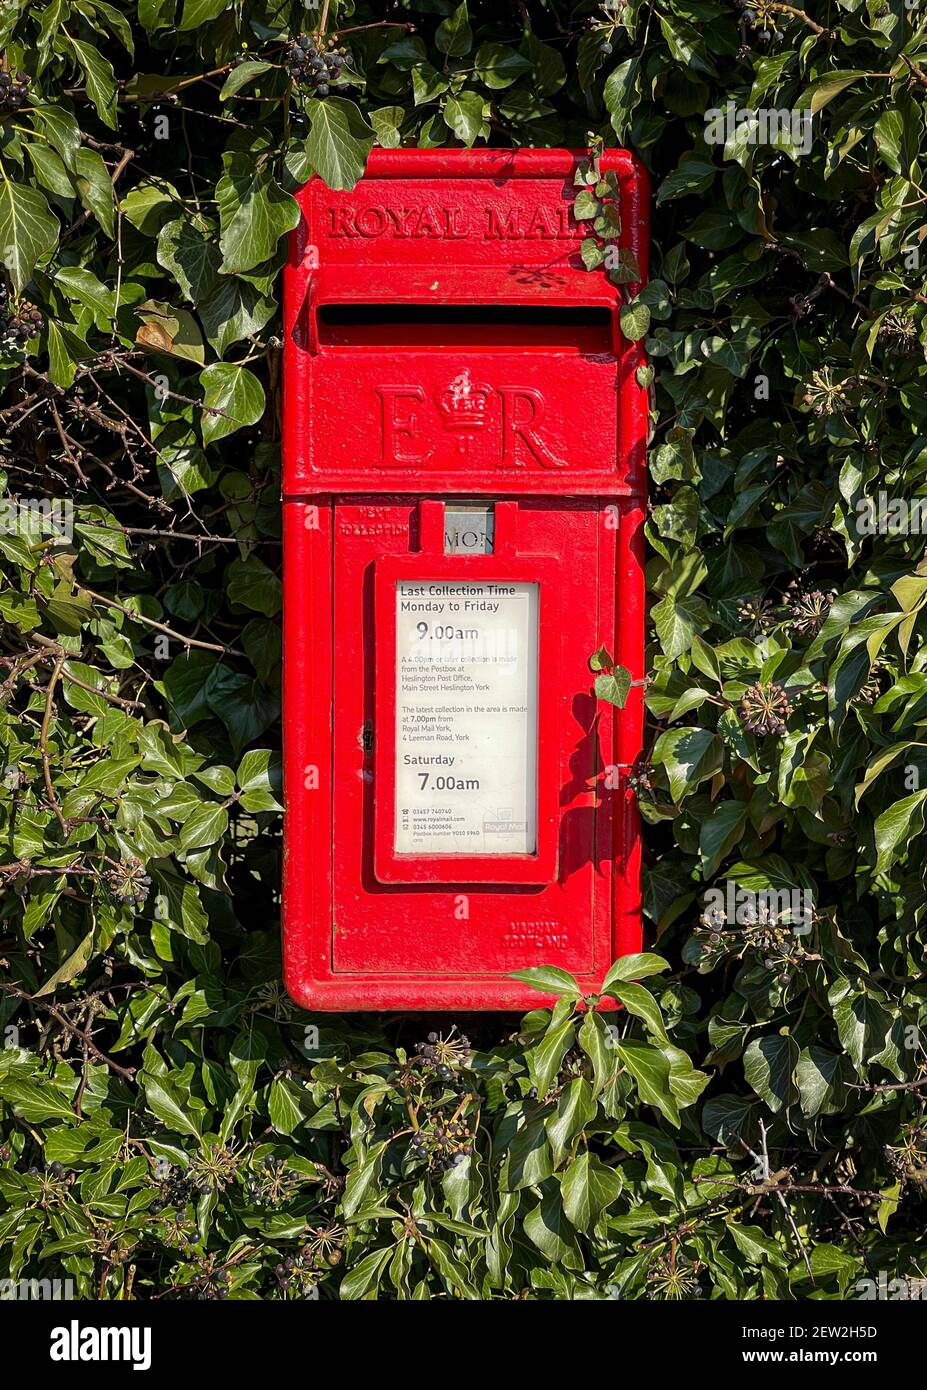 Casella postale rossa in Hedge, Heslington, York, Regno Unito Foto Stock